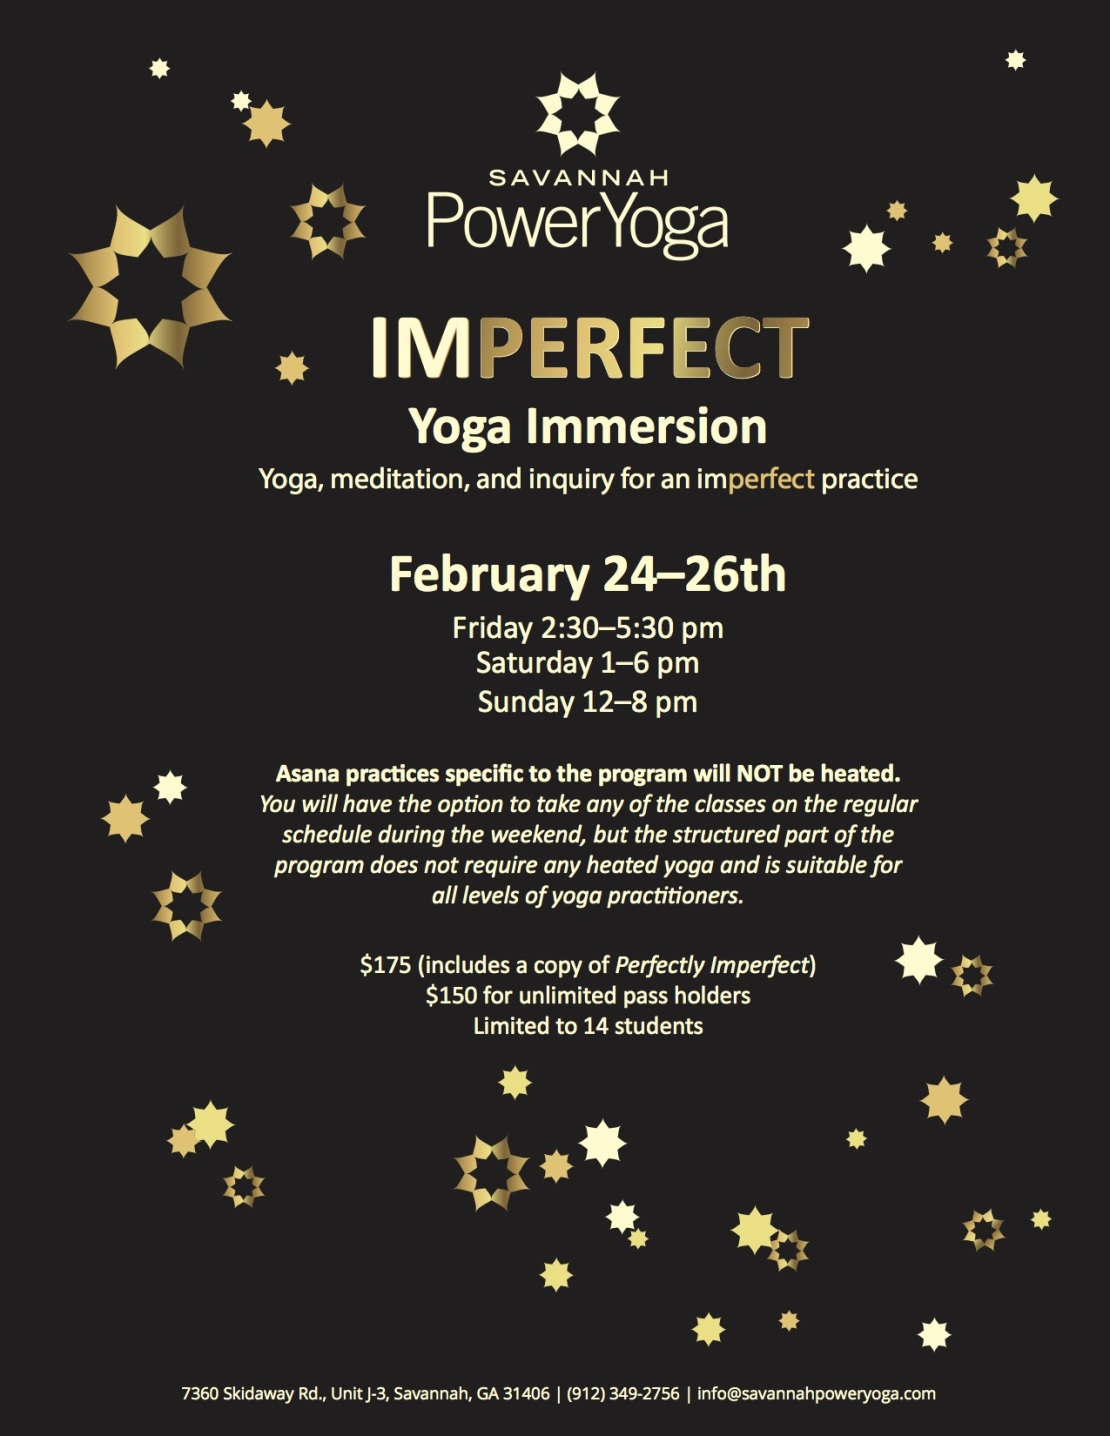 ImPerfect Yoga Immersion